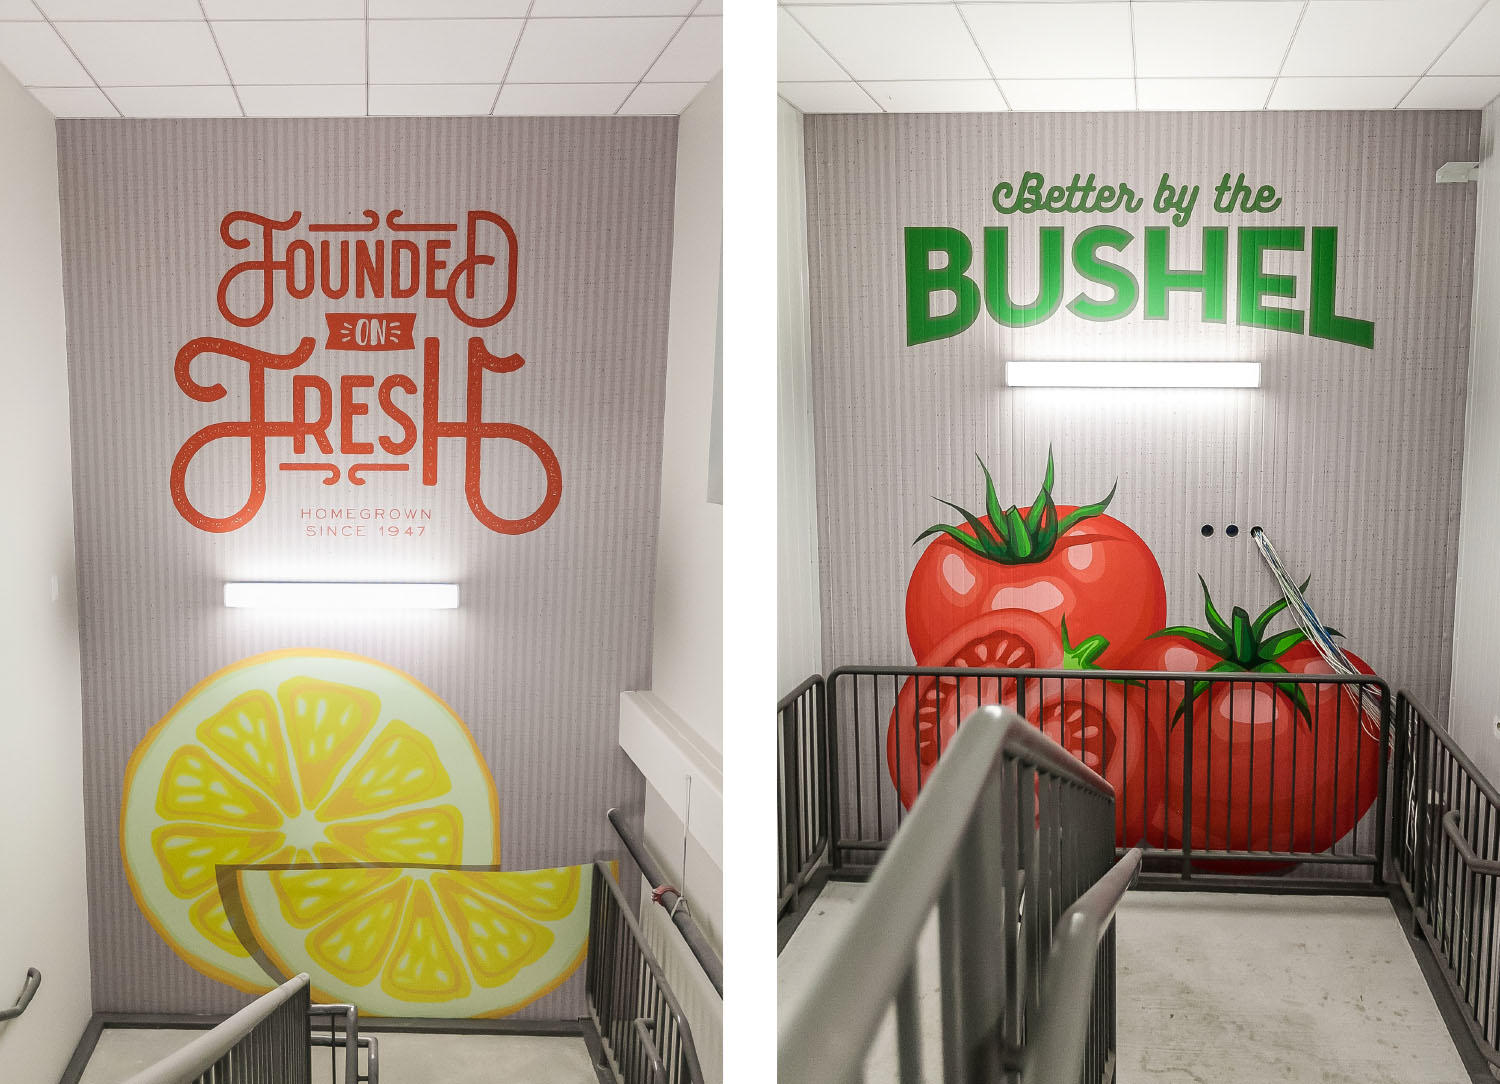 Capitol City Produce | Founded on Fresh Better by the Bushel